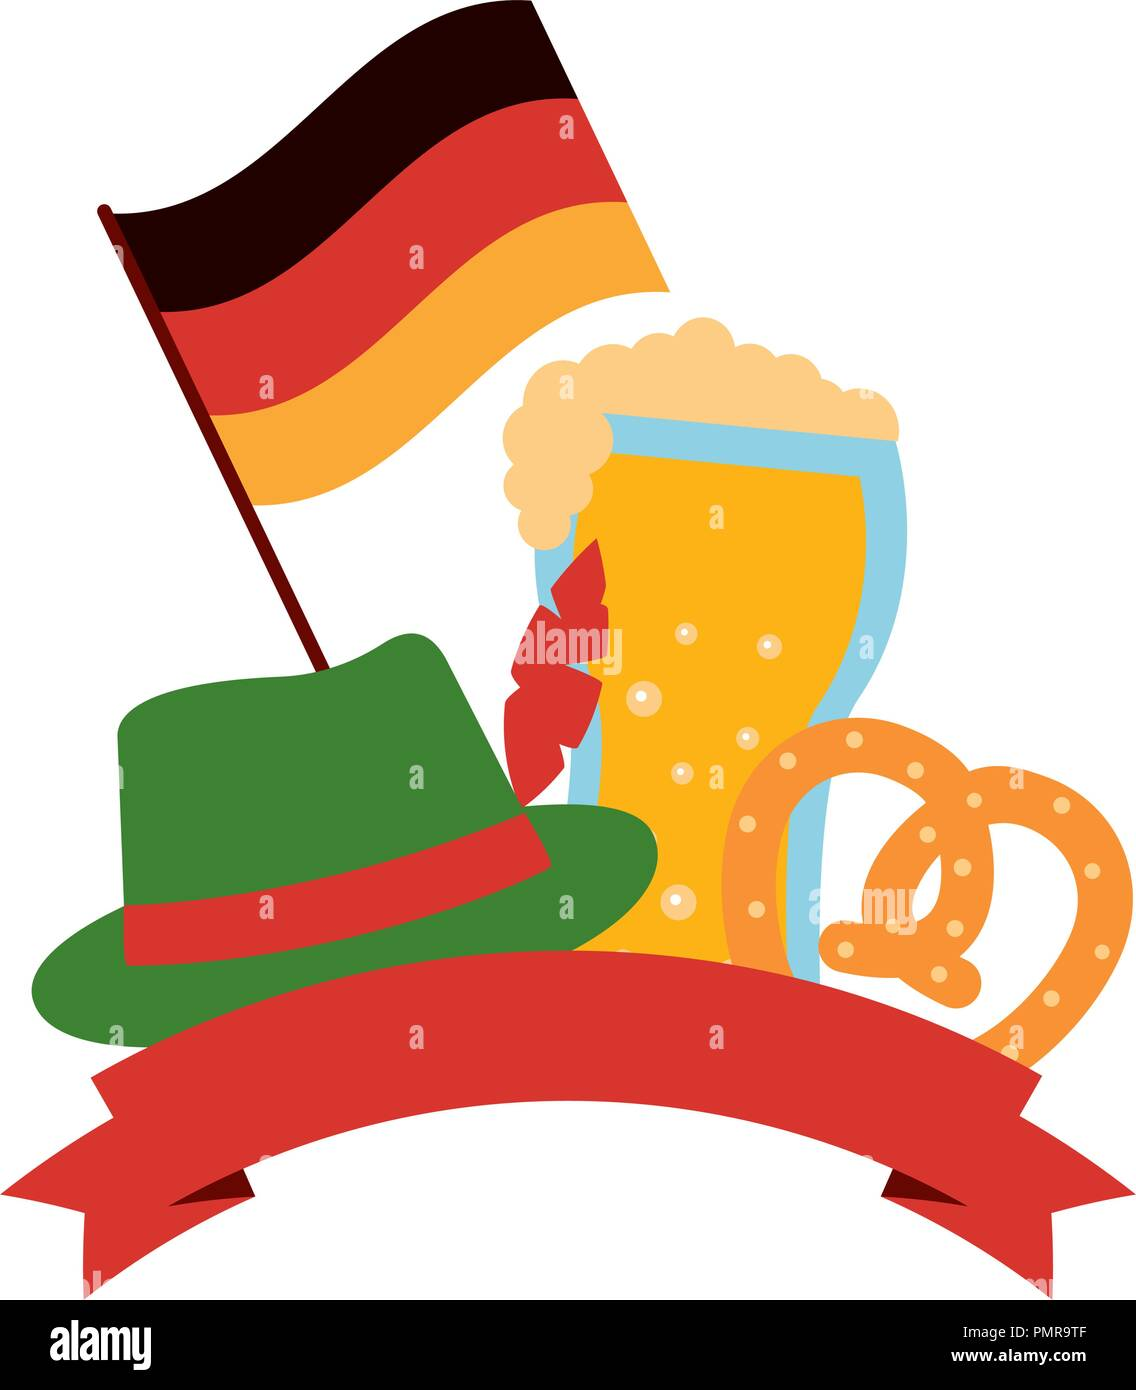 germany flag with oktoberfest icons - Stock Image